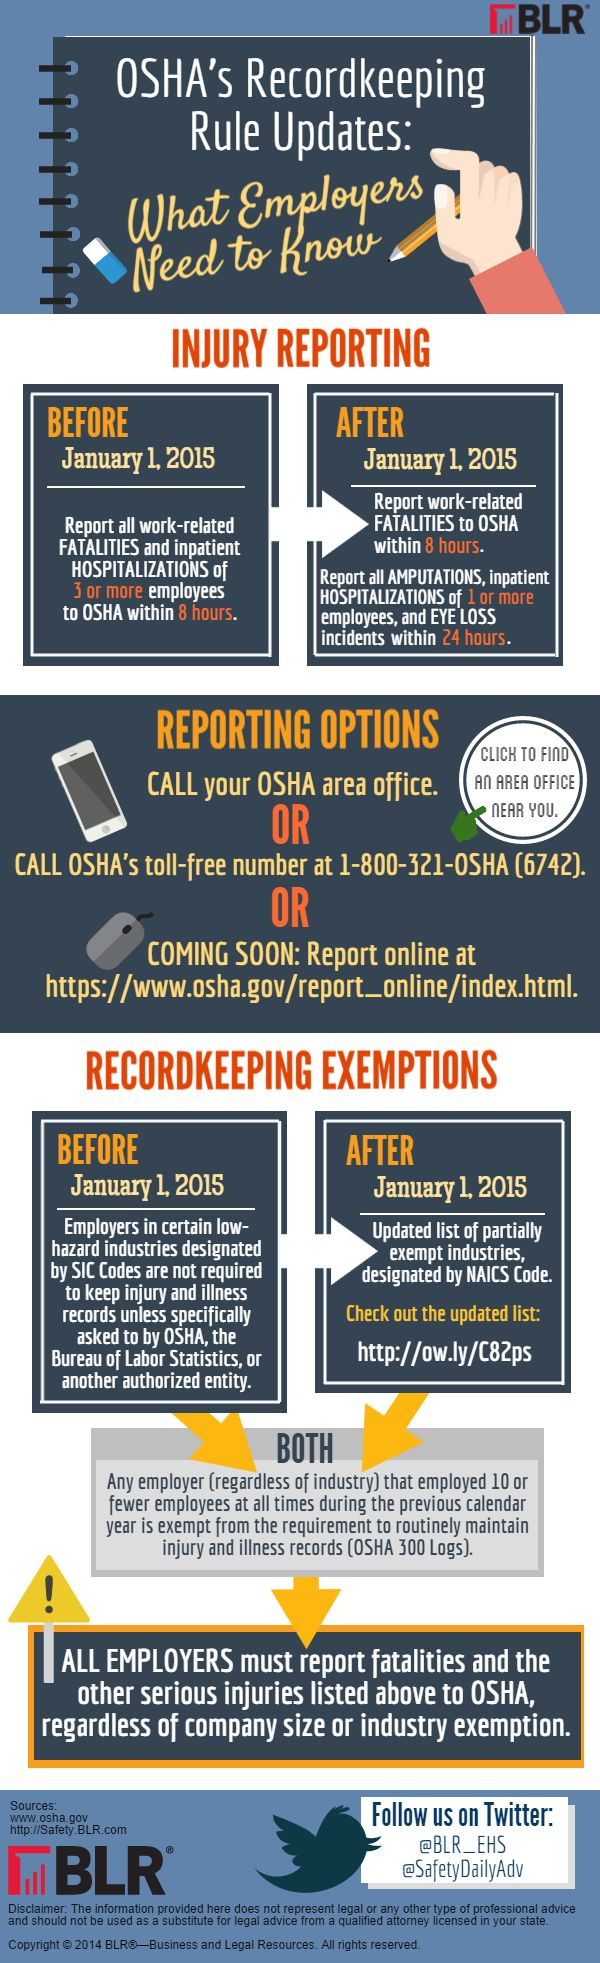 OSHA's Recordkeeping Rule Updates What Employers Need to